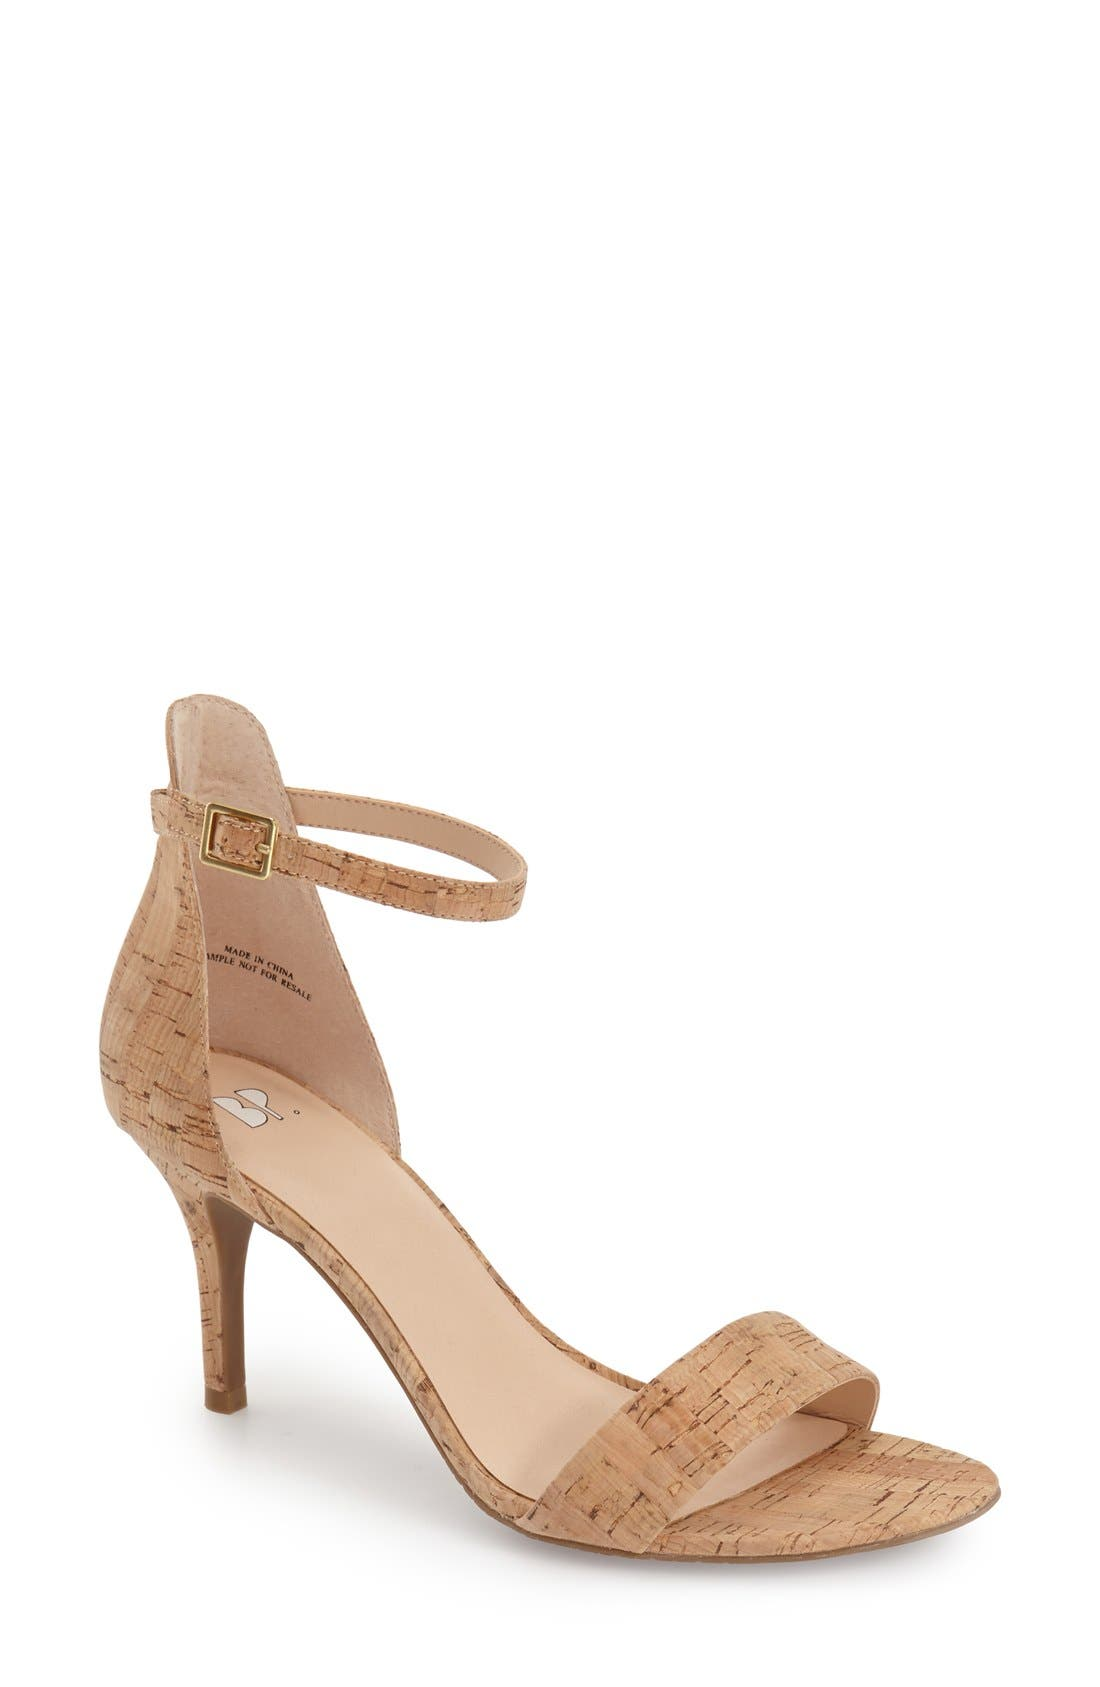 'Luminate' Open Toe Dress Sandal,                             Main thumbnail 30, color,